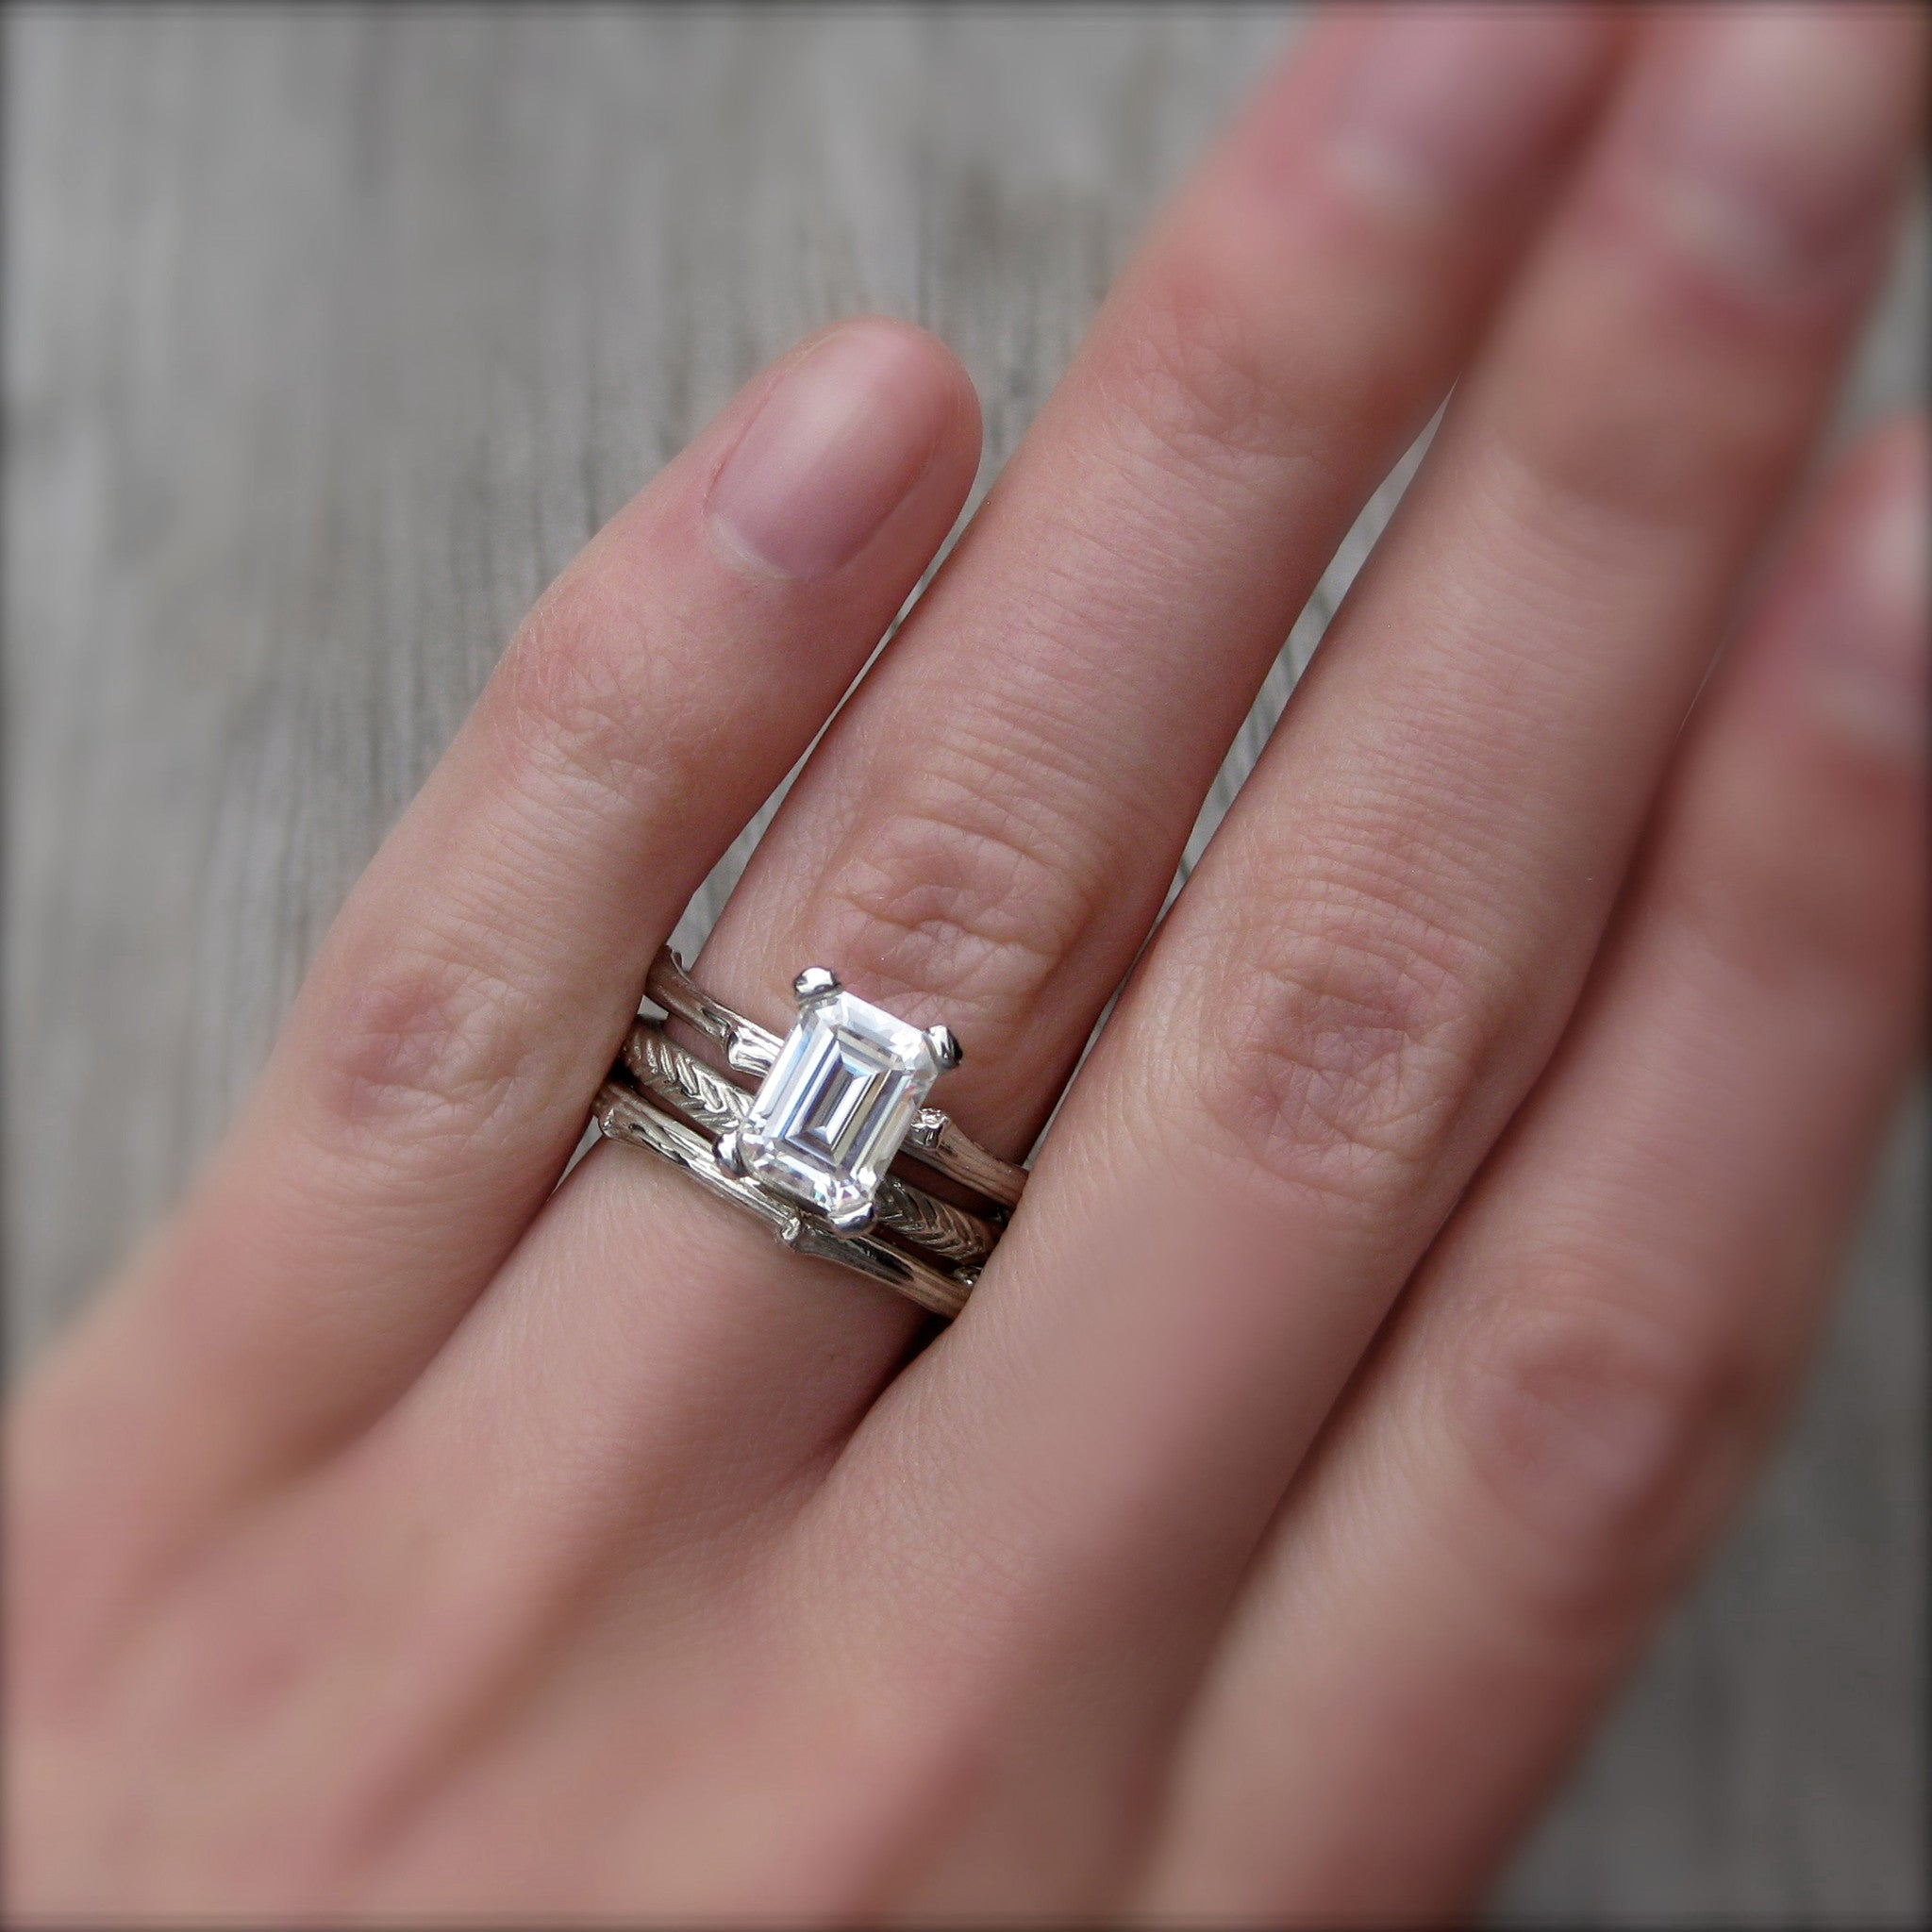 ... Emerald Cut Forever Brilliant Moissanite Twig Engagement Ring;  1.75carat ...